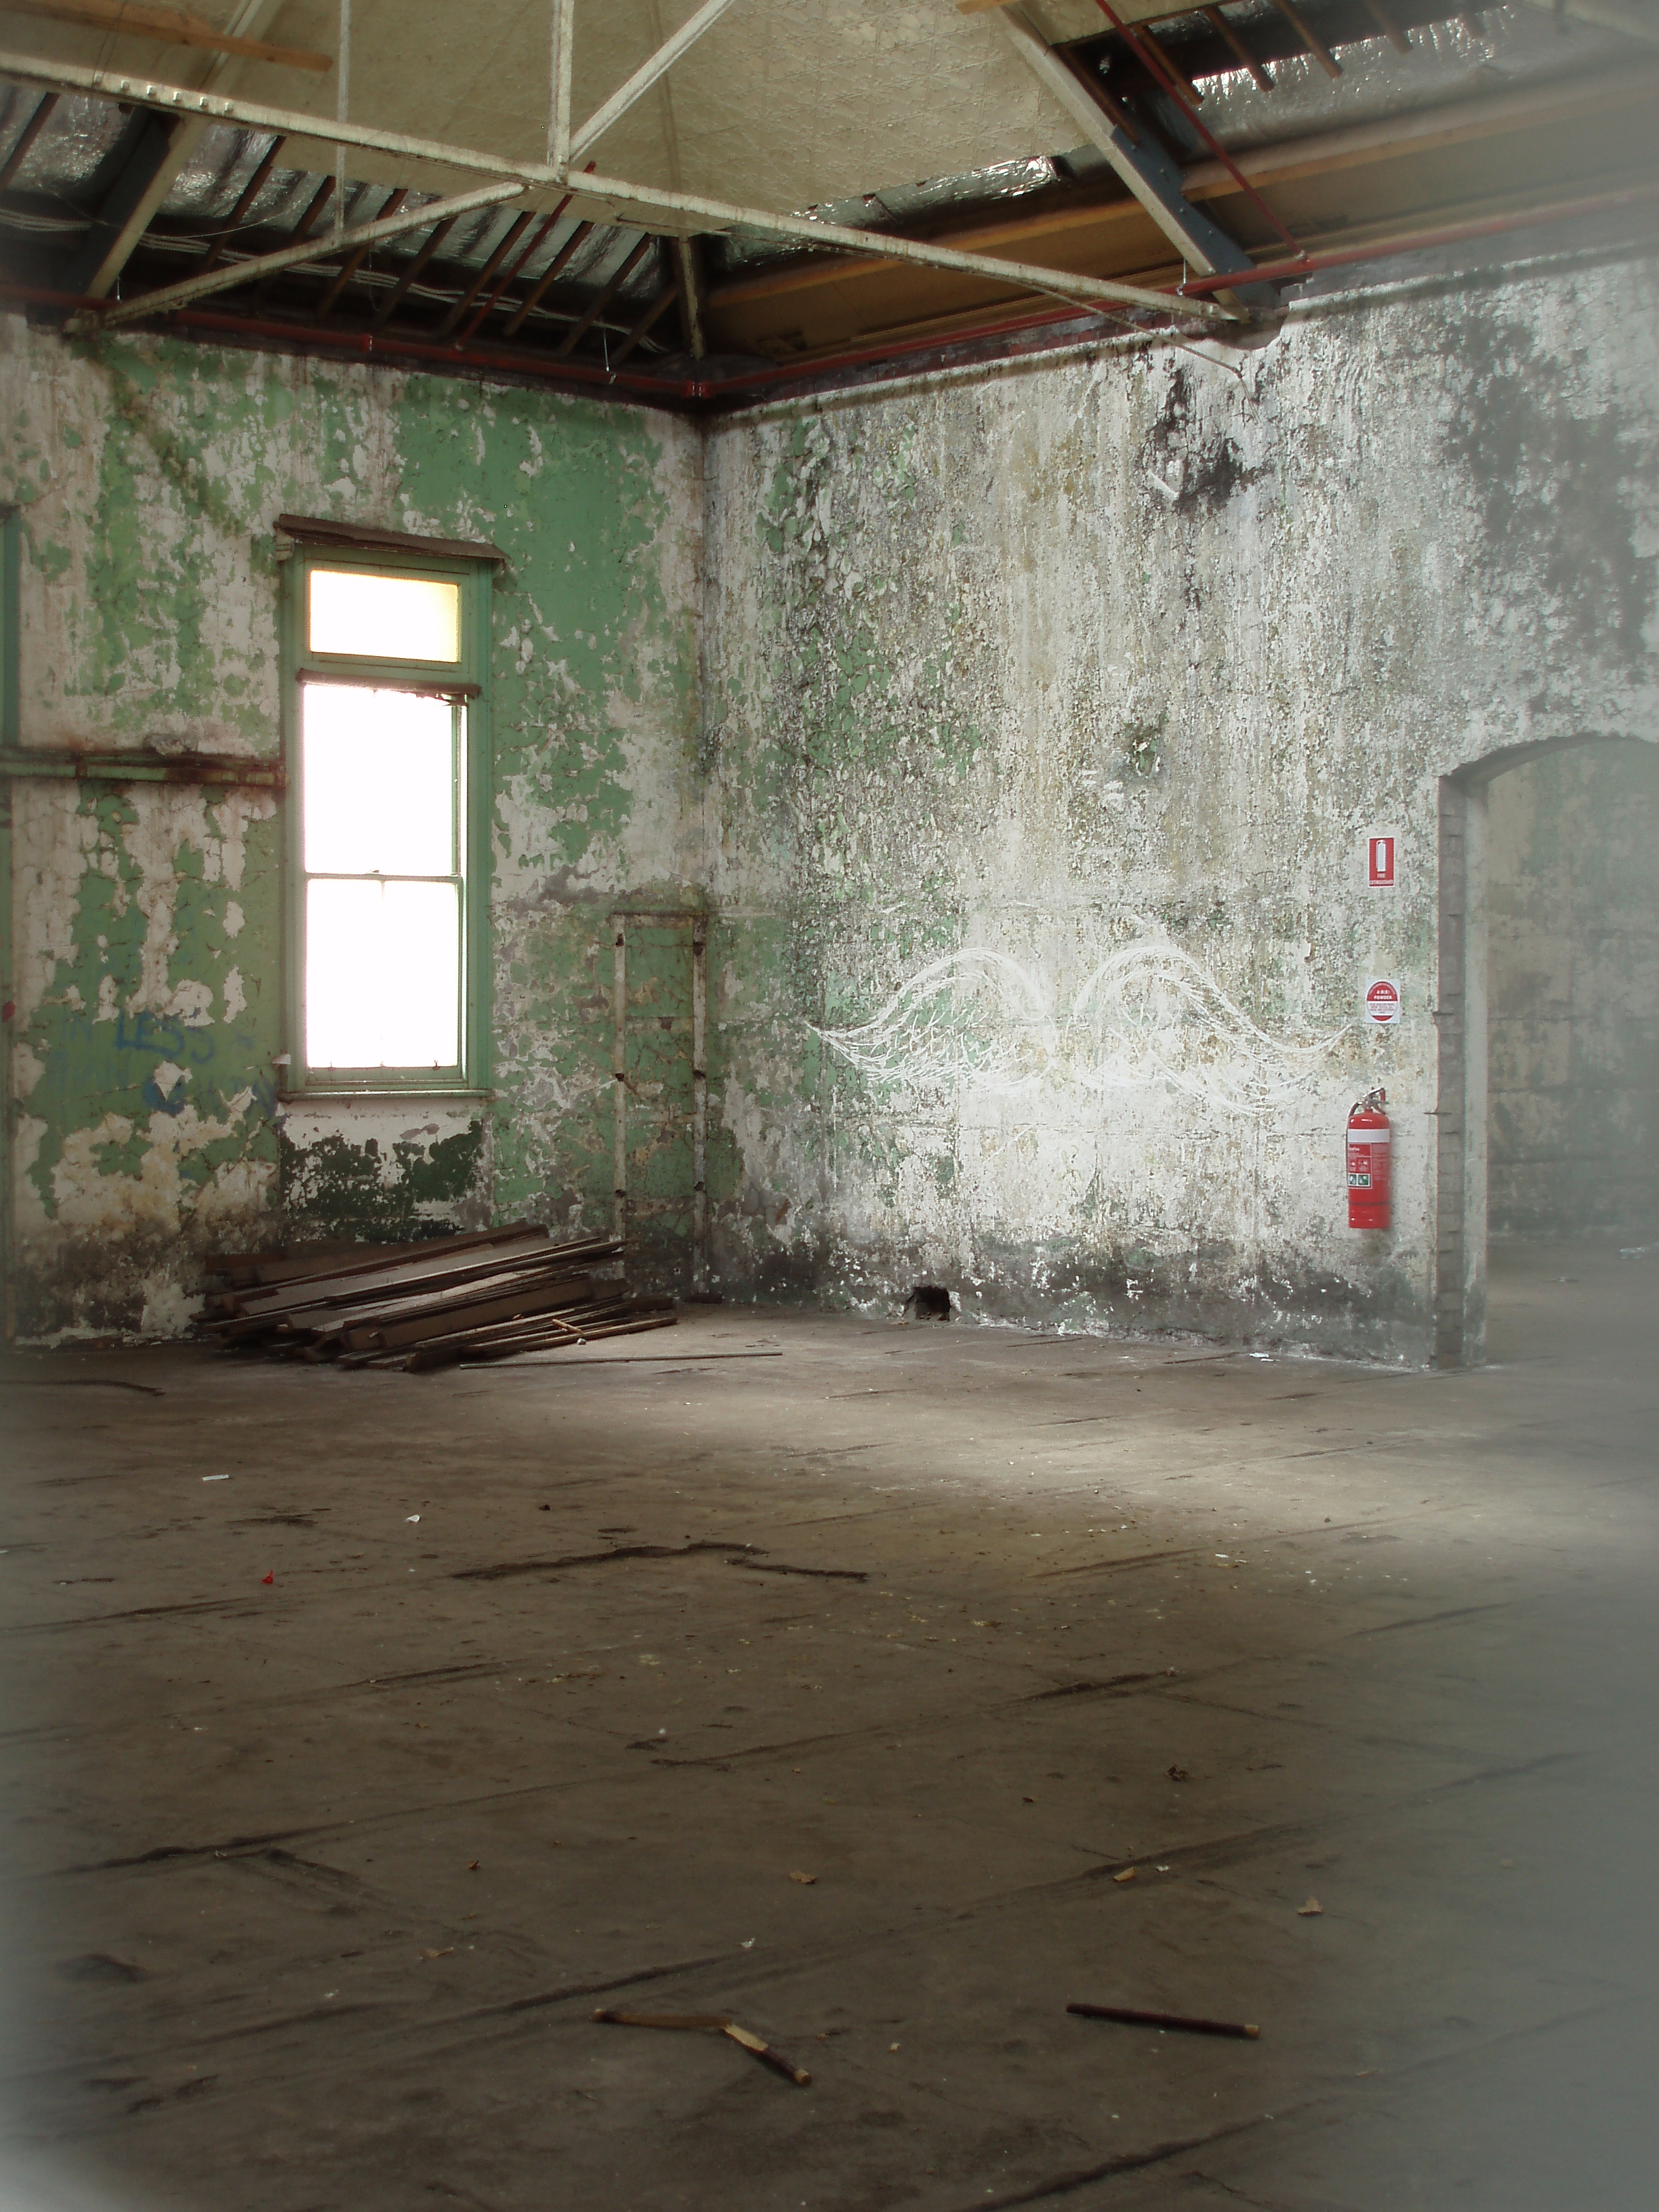 old derelict building interior with paint flaked walls